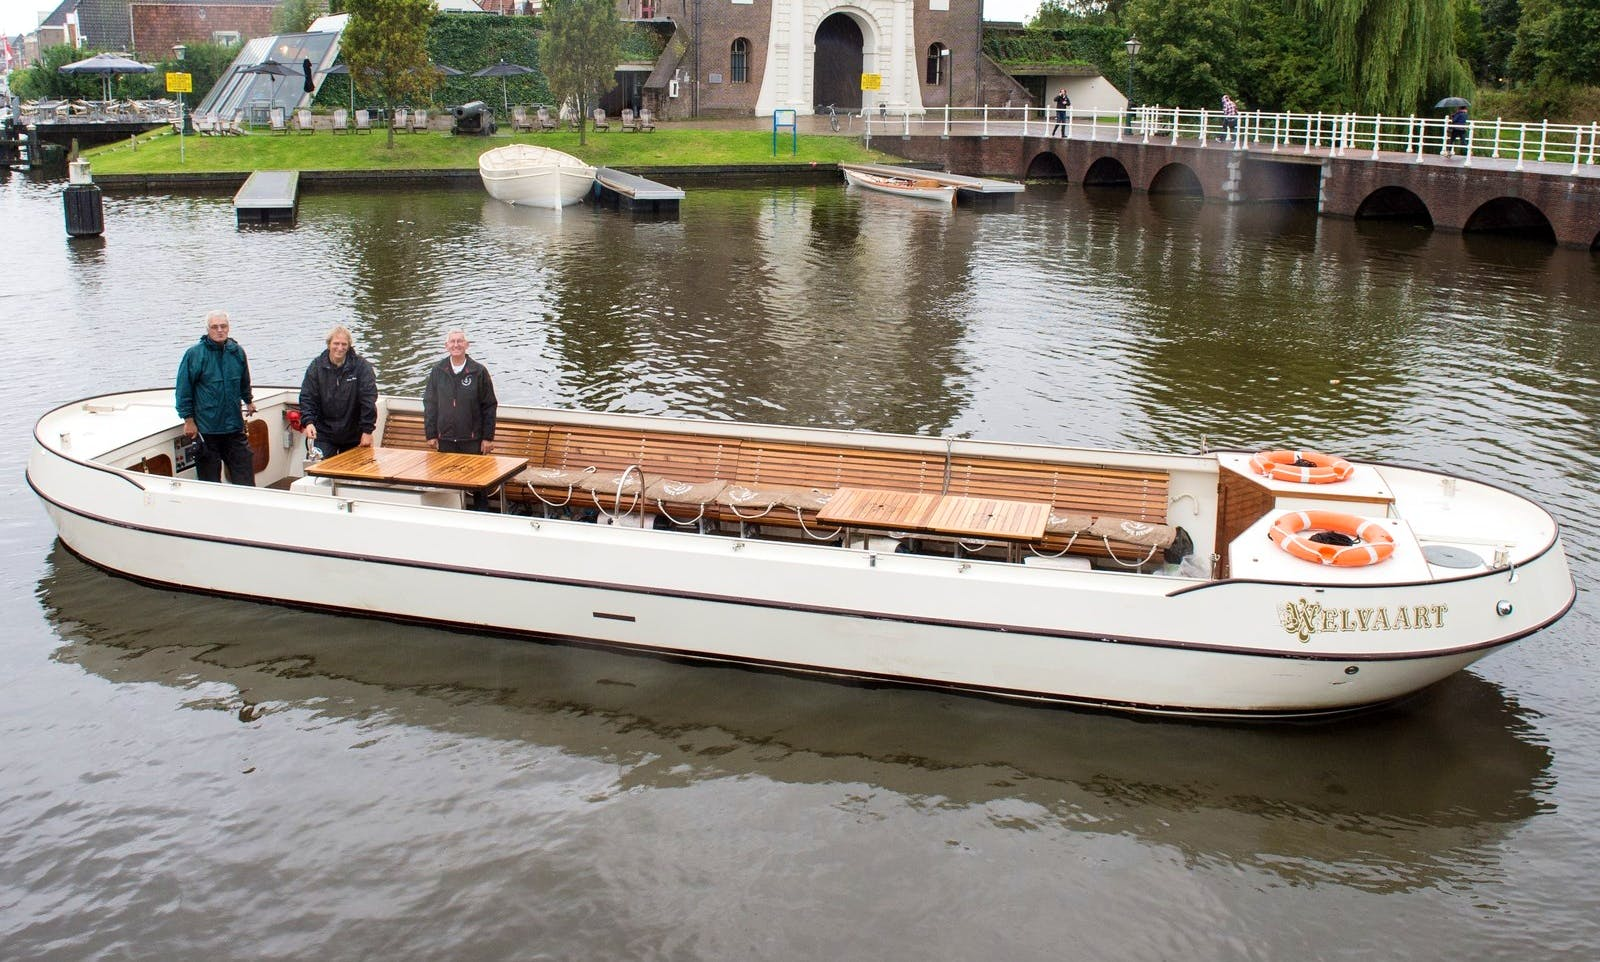 Book a 39' Canal Boat for 36 Person in Leiden, the Netherlands